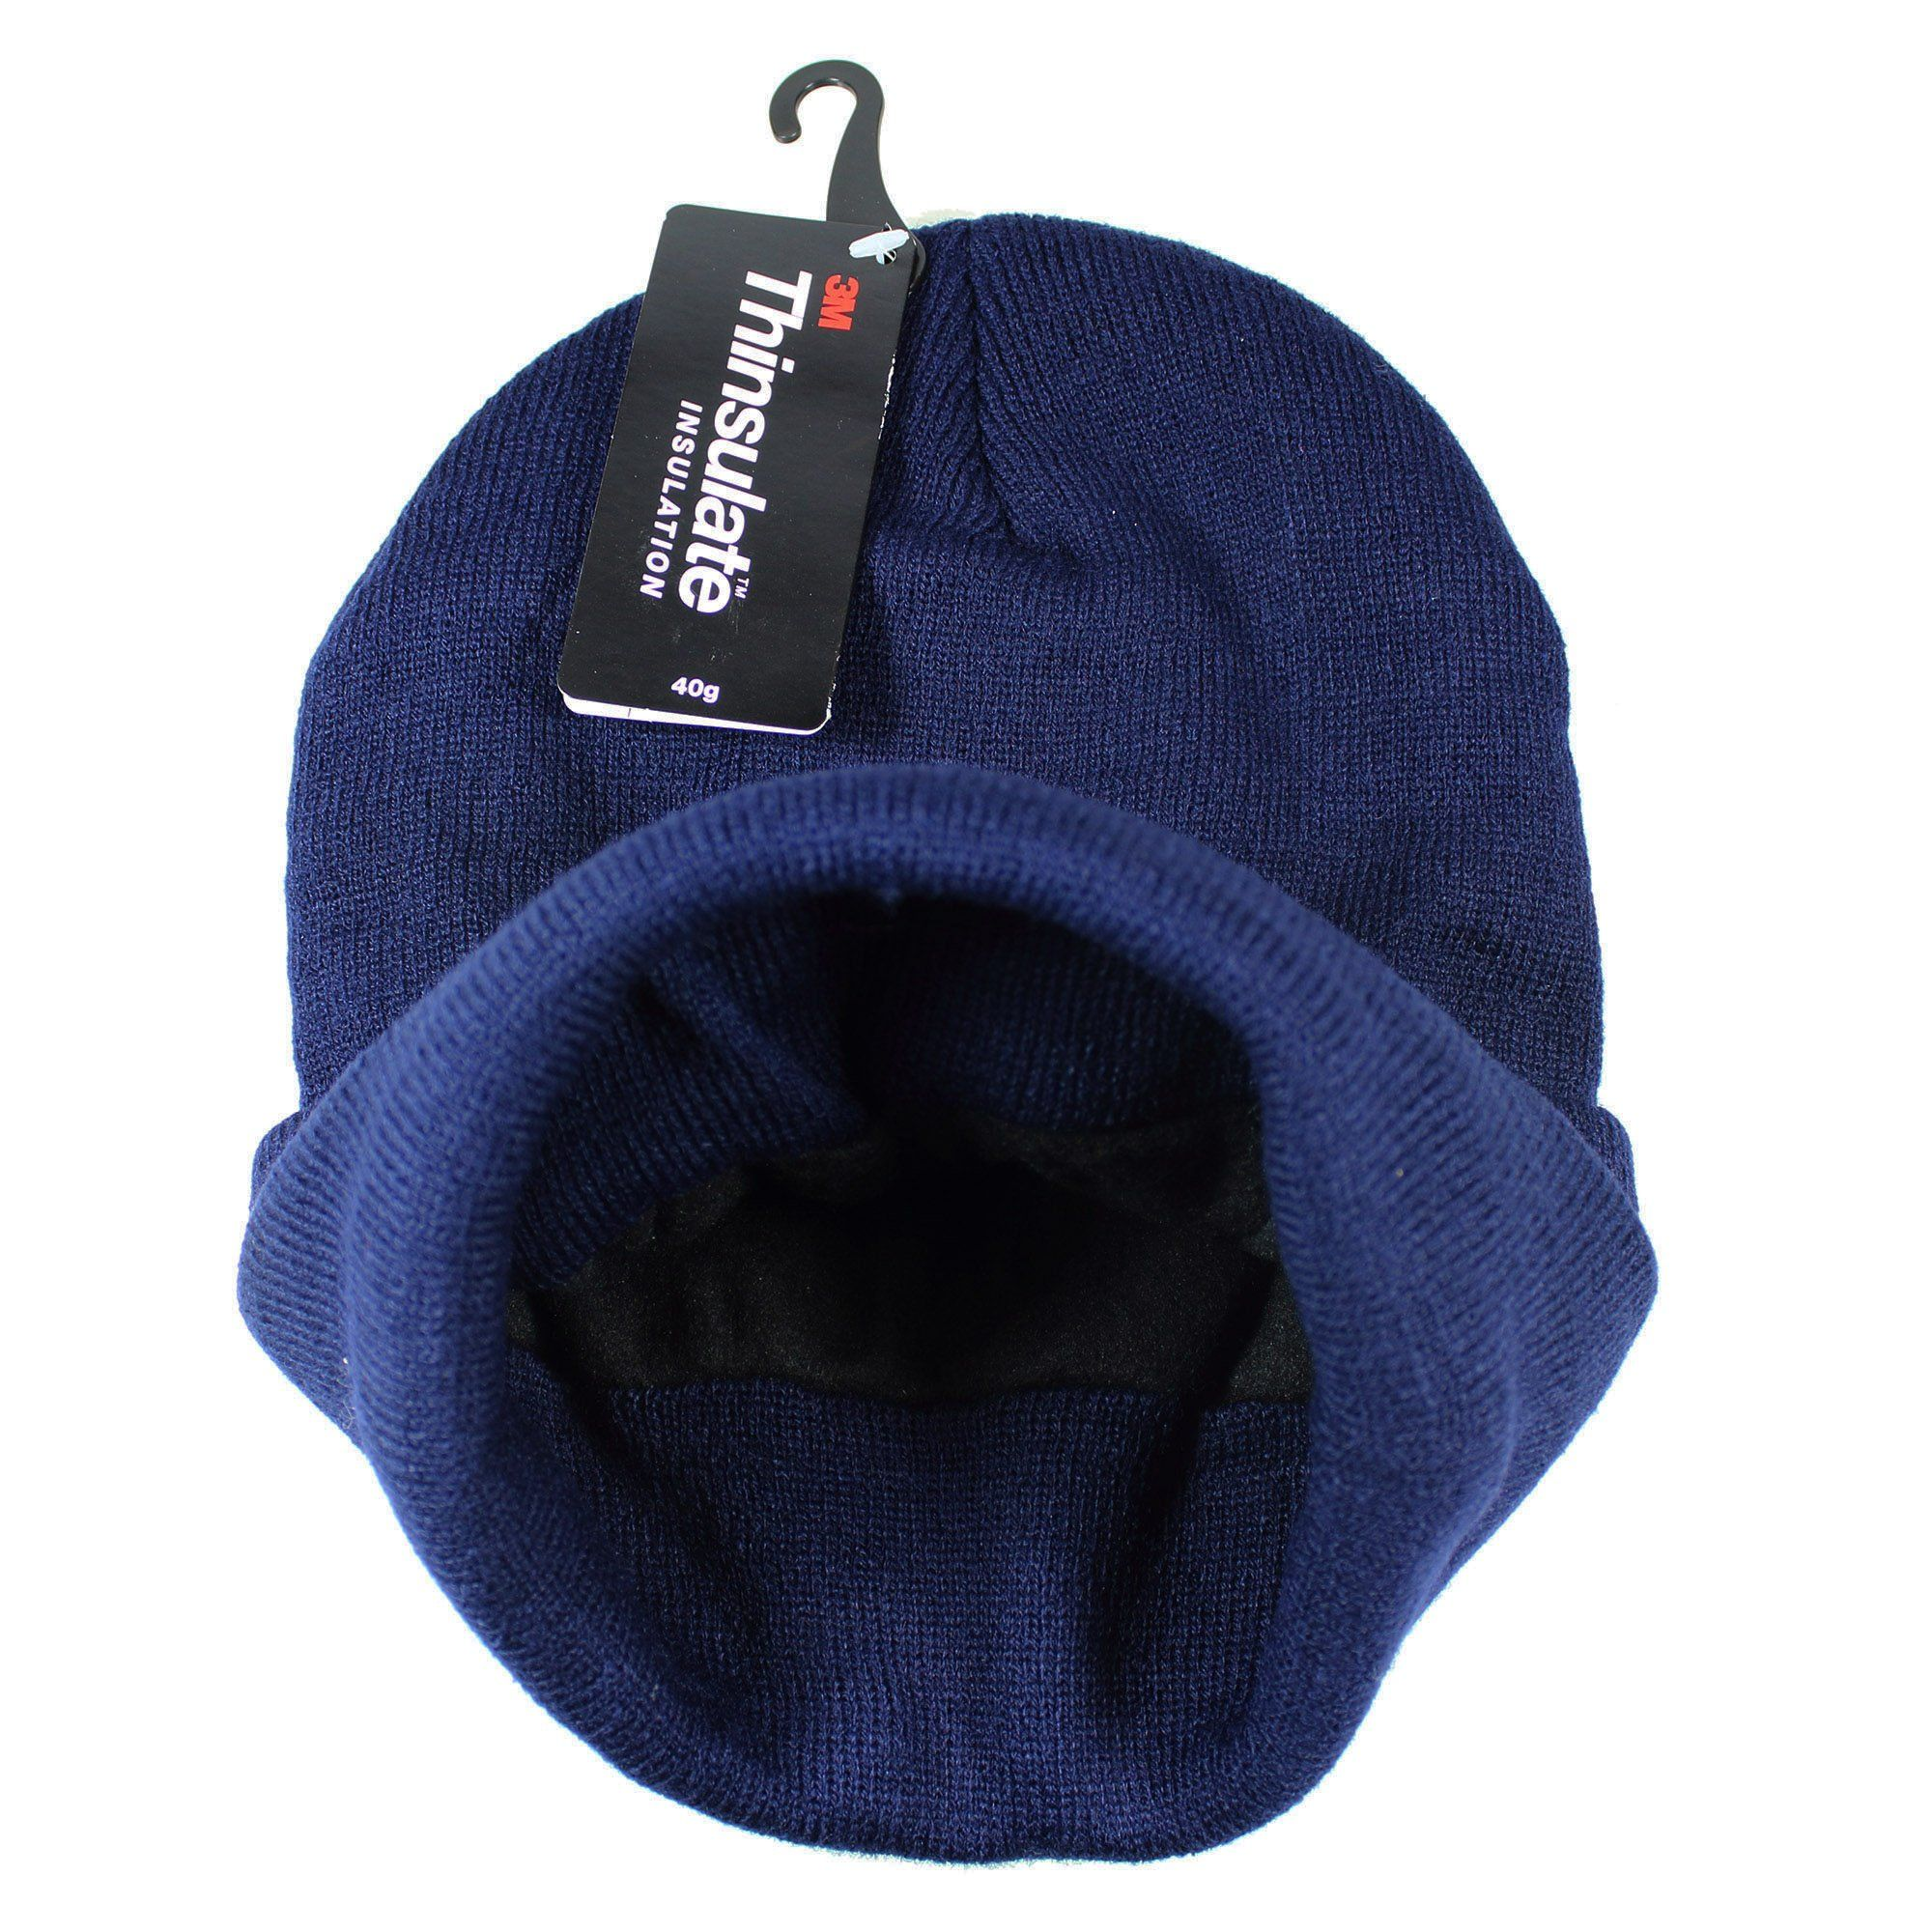 1925d33e301 Gelante 3M Thinsulate Women Men Knitted Thermal Winter Cap Casual  BeaniesWholesale Lot 12 PacksNavy     You can get more details by clicking  on the image.